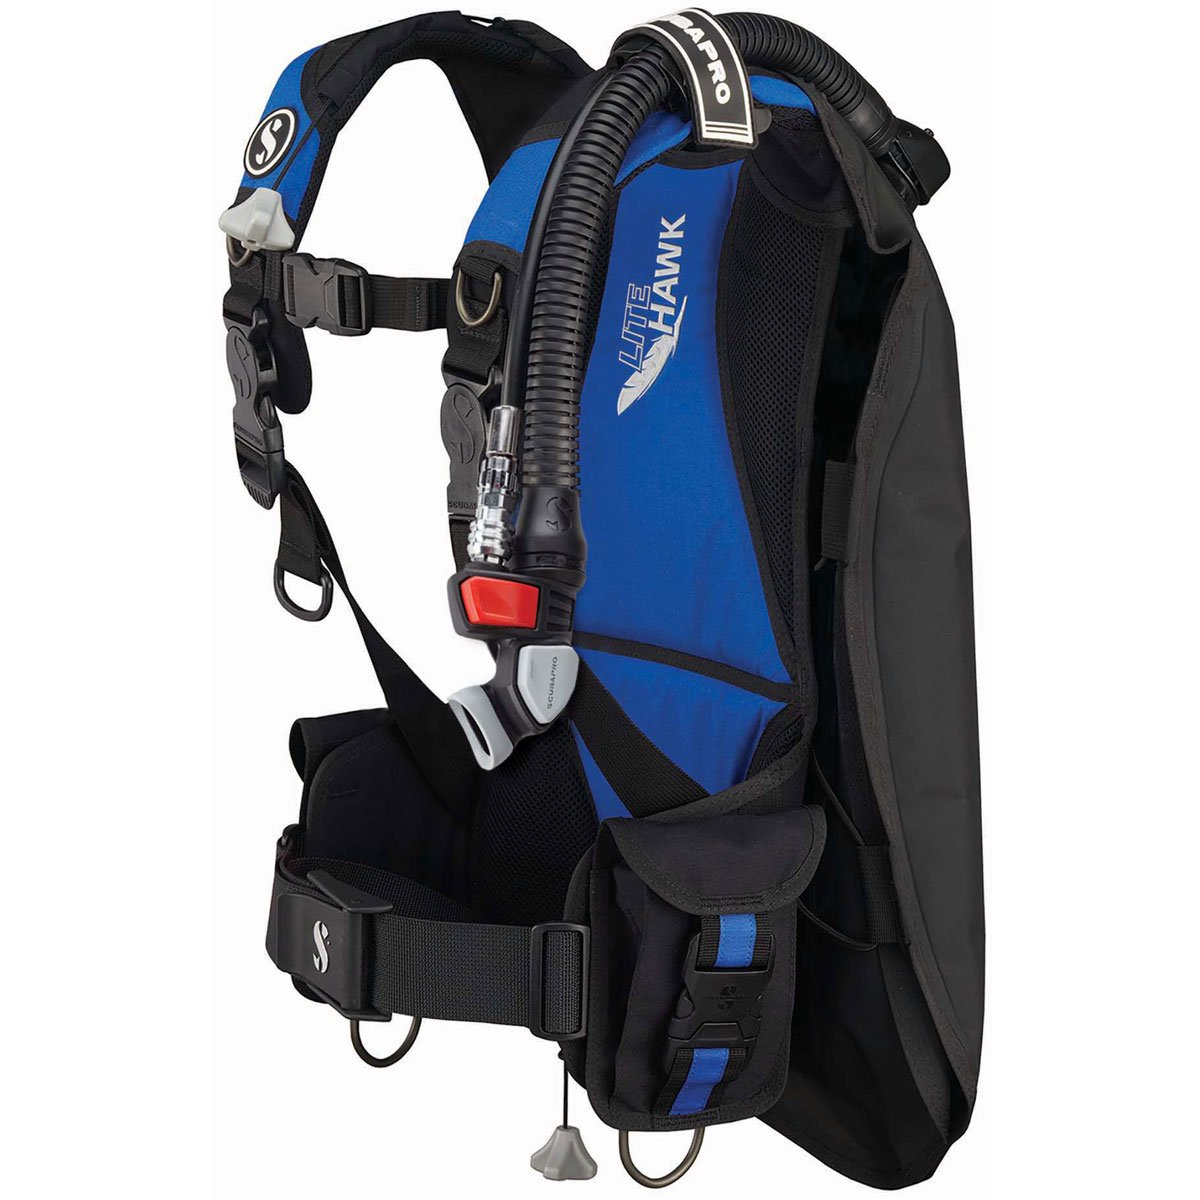 ScubaPro Litehawk BCD with BPI (Black / Blue, XL / 2XL)